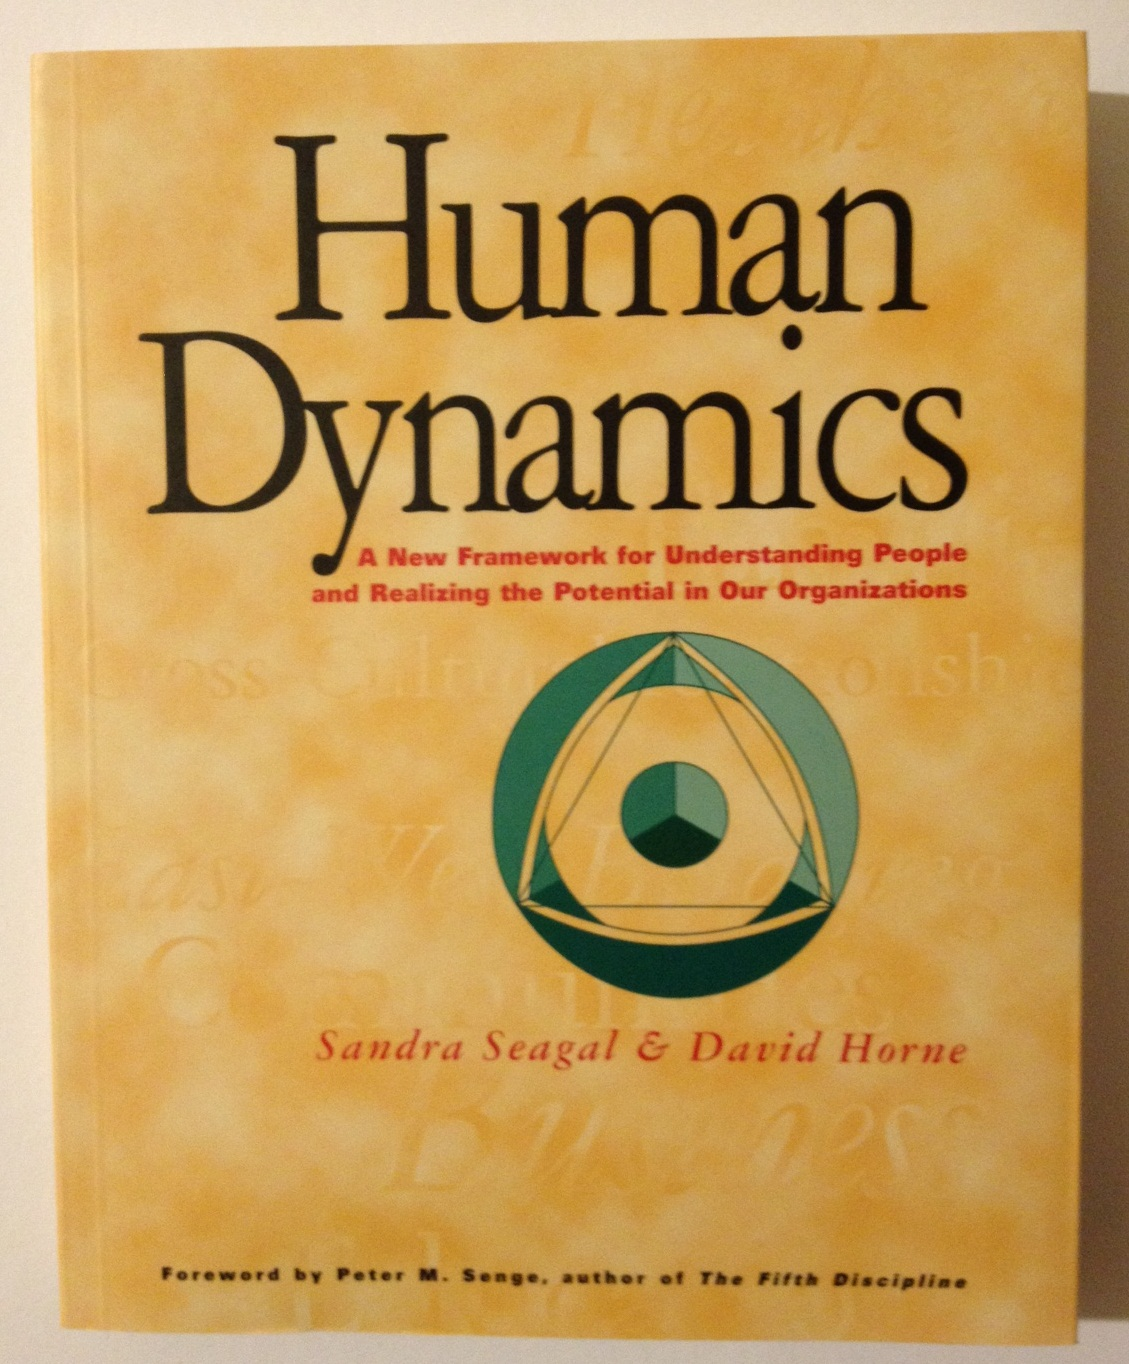 Human Dynamics: A New Framework for Understanding People and Realizing the Potential in our Organizations